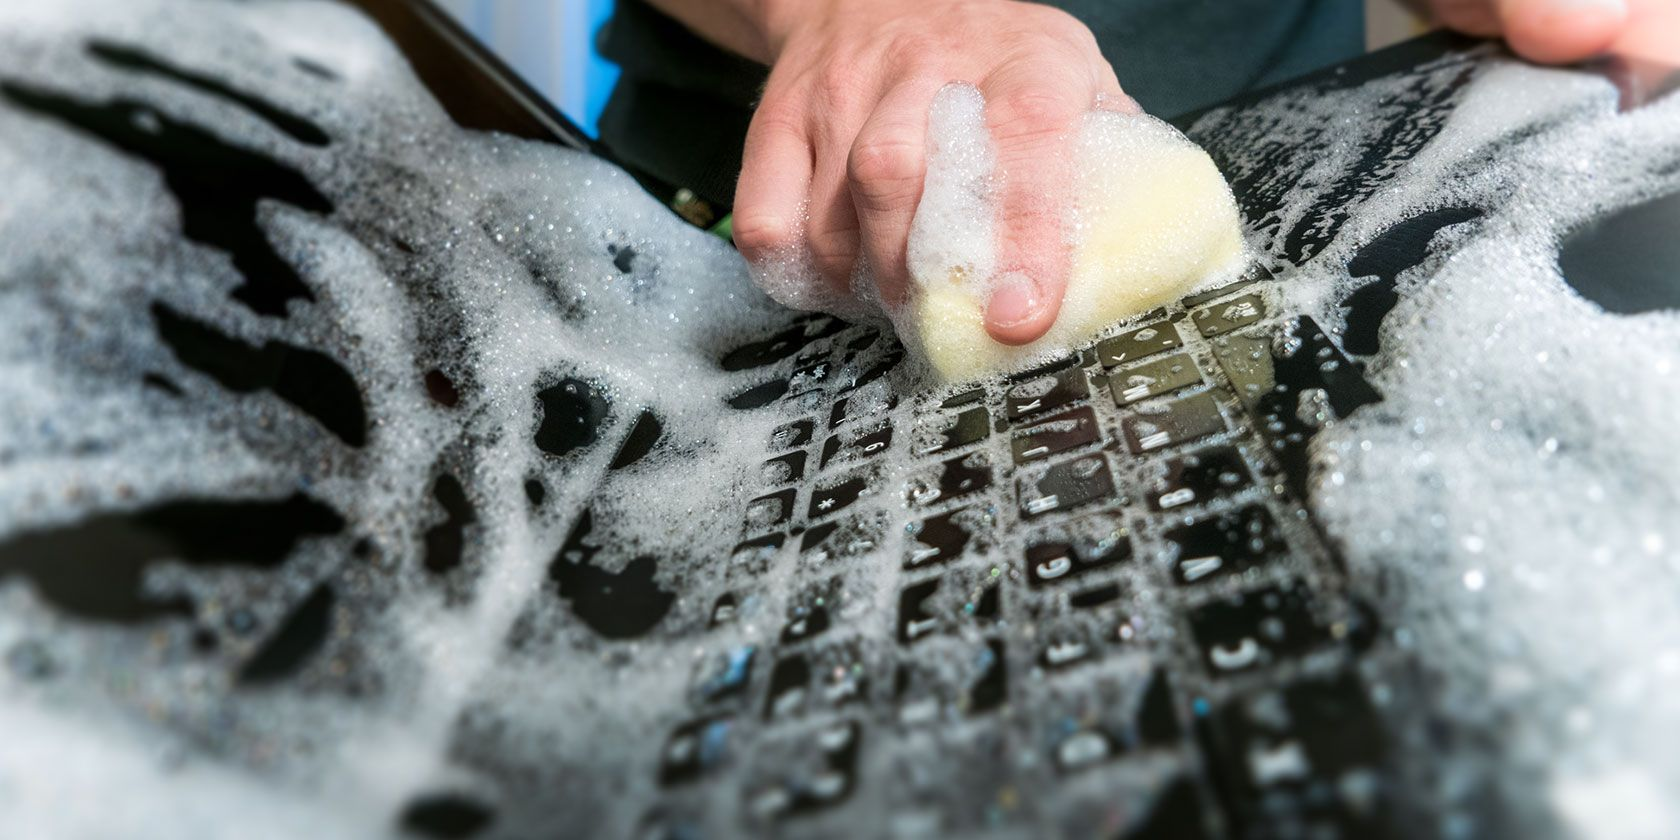 Have You Been Cleaning Your Keyboard Wrong This Whole Time?!